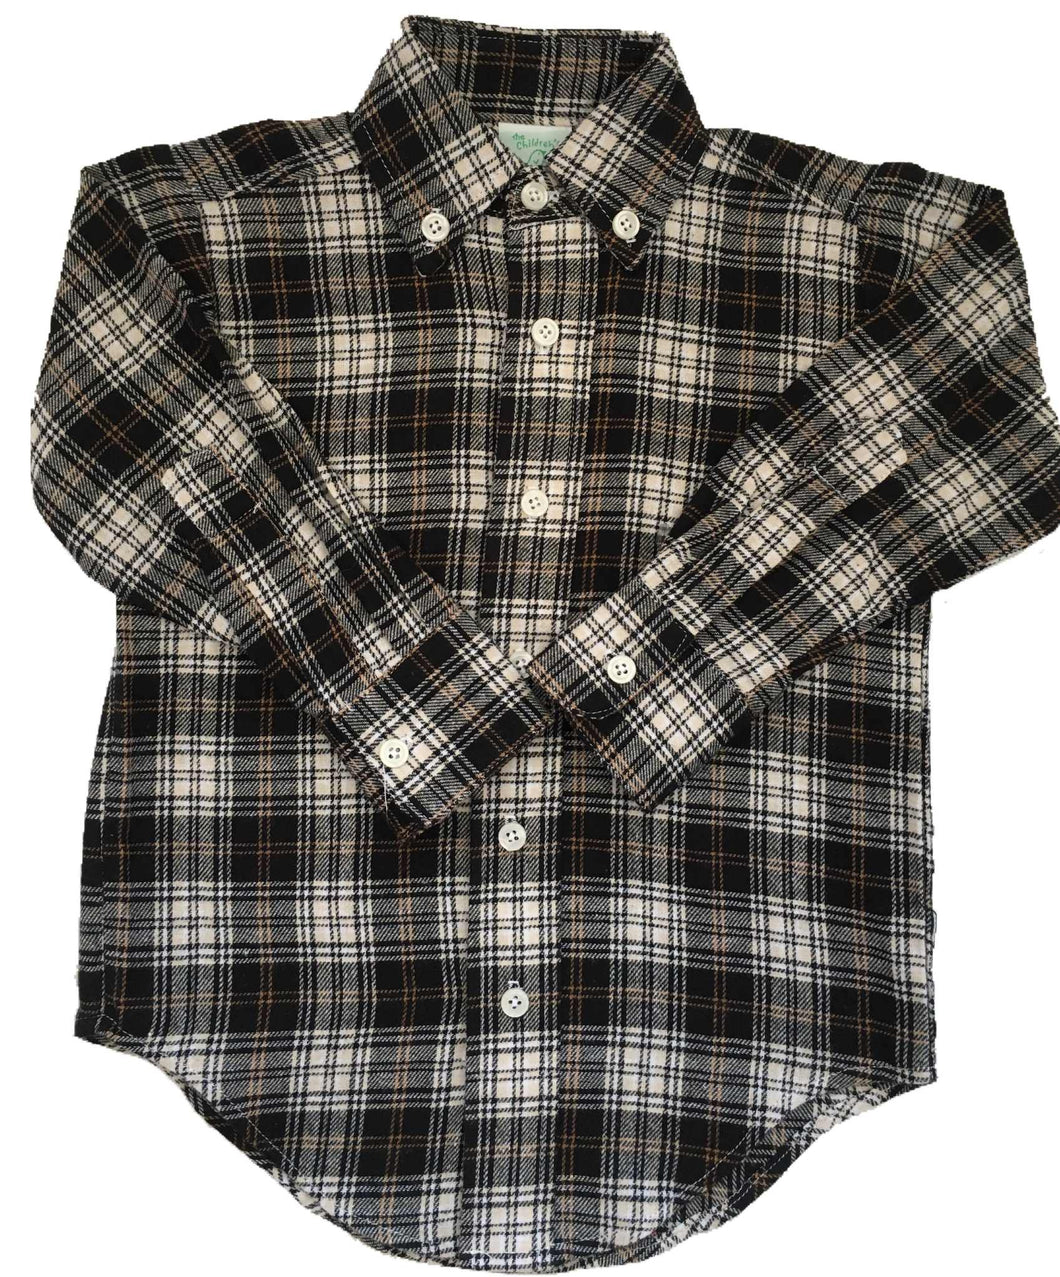 CCP Flannel Button Down Oxford Merrick Khaki Plaid